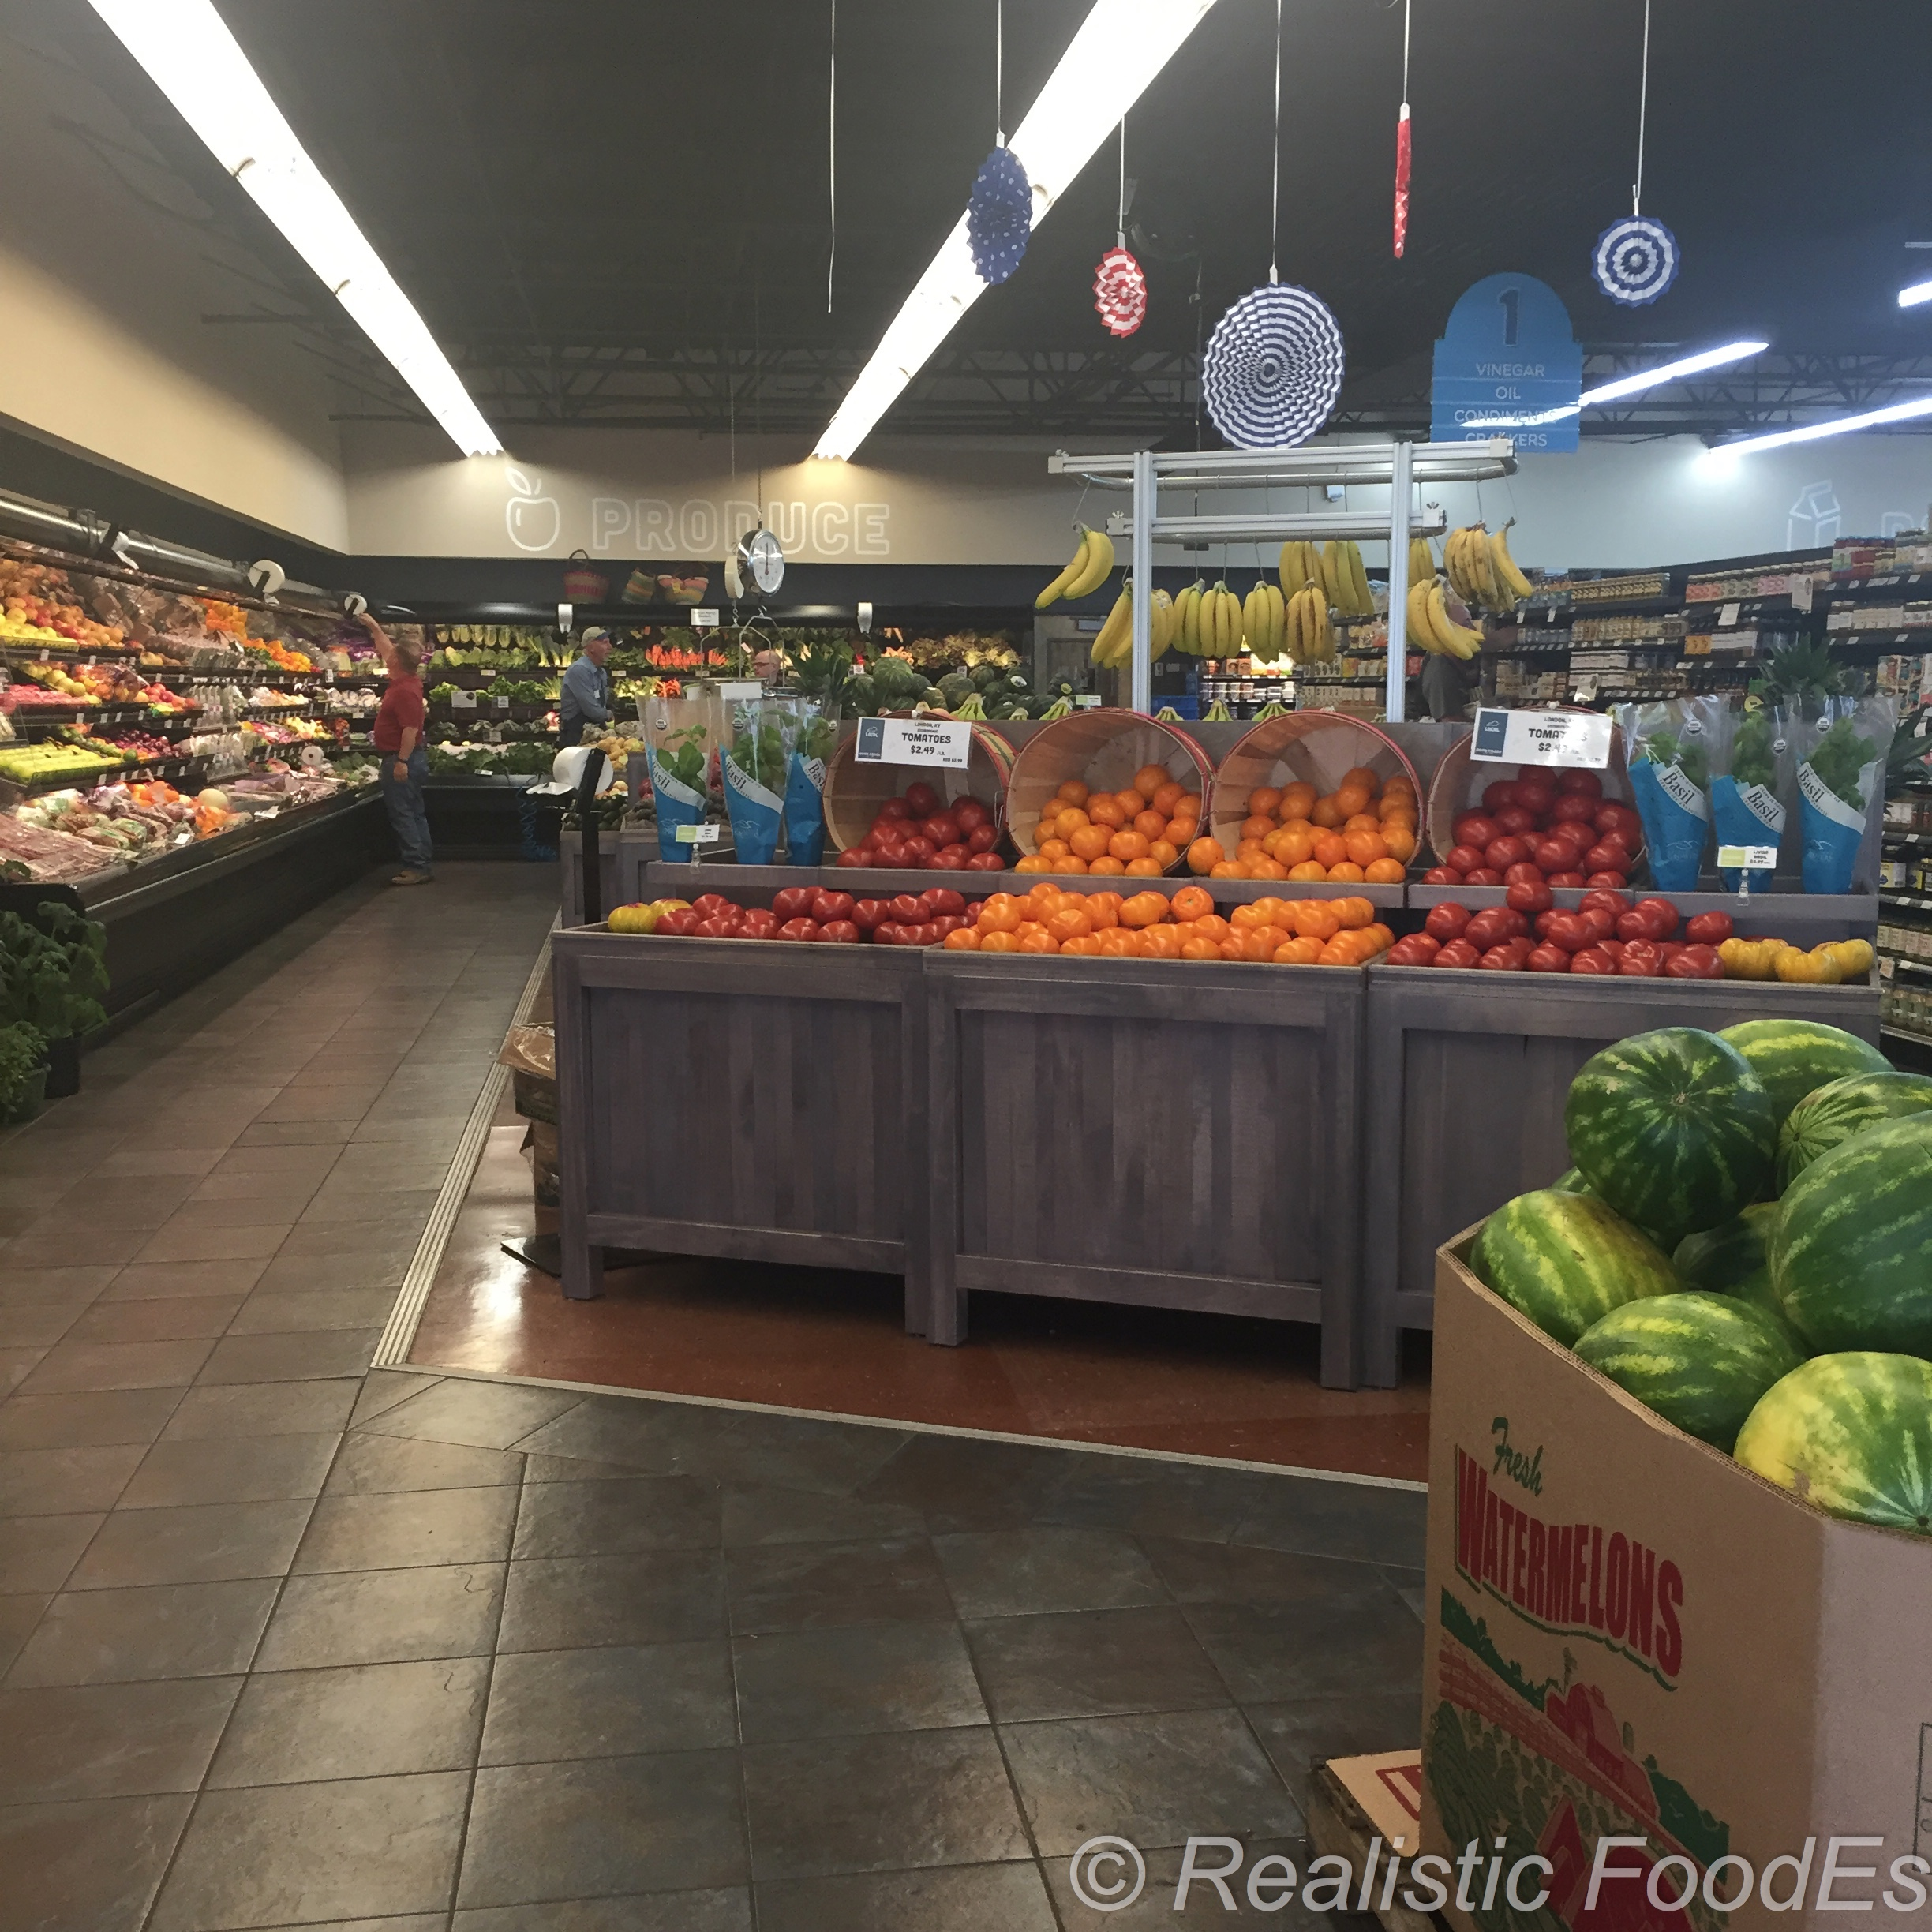 Shop along the perimeter first -- Start with produce.